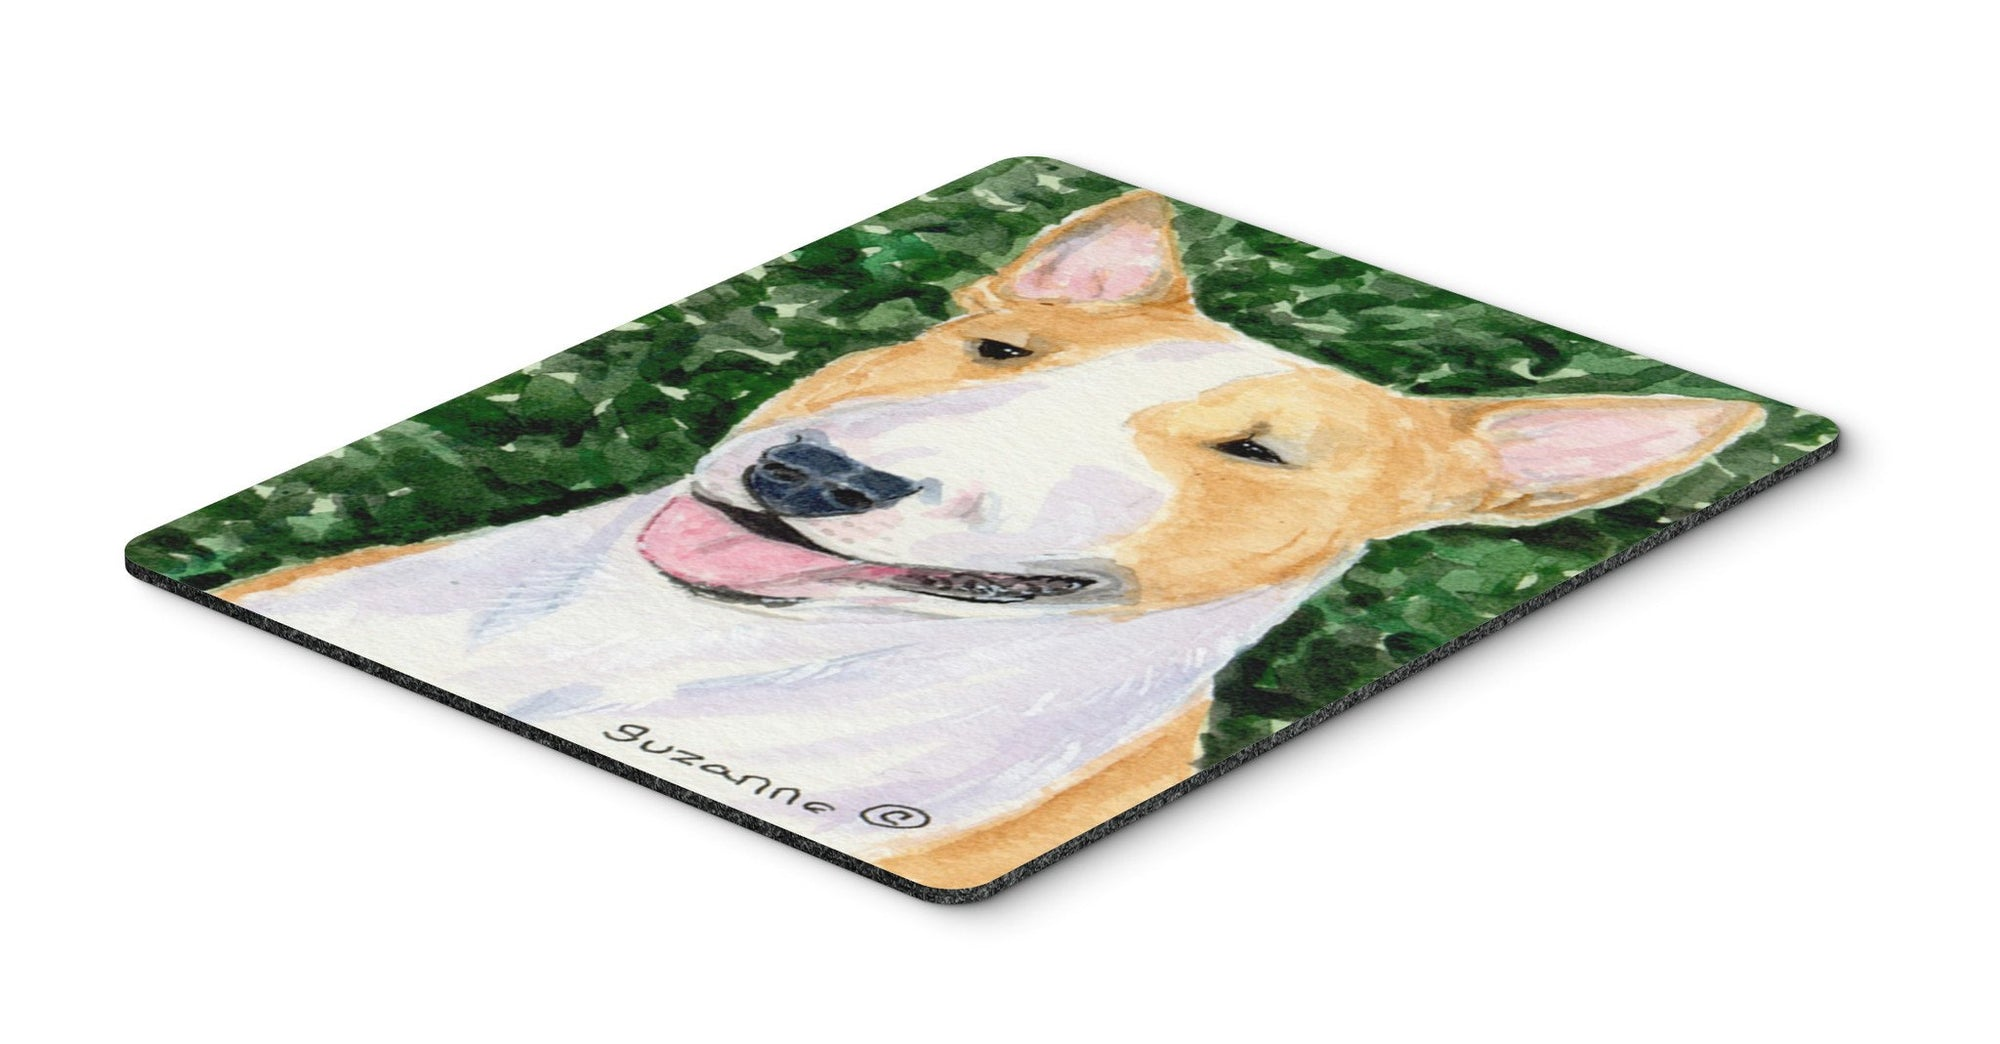 Bull Terrier Mouse Pad / Hot Pad / Trivet by Caroline's Treasures